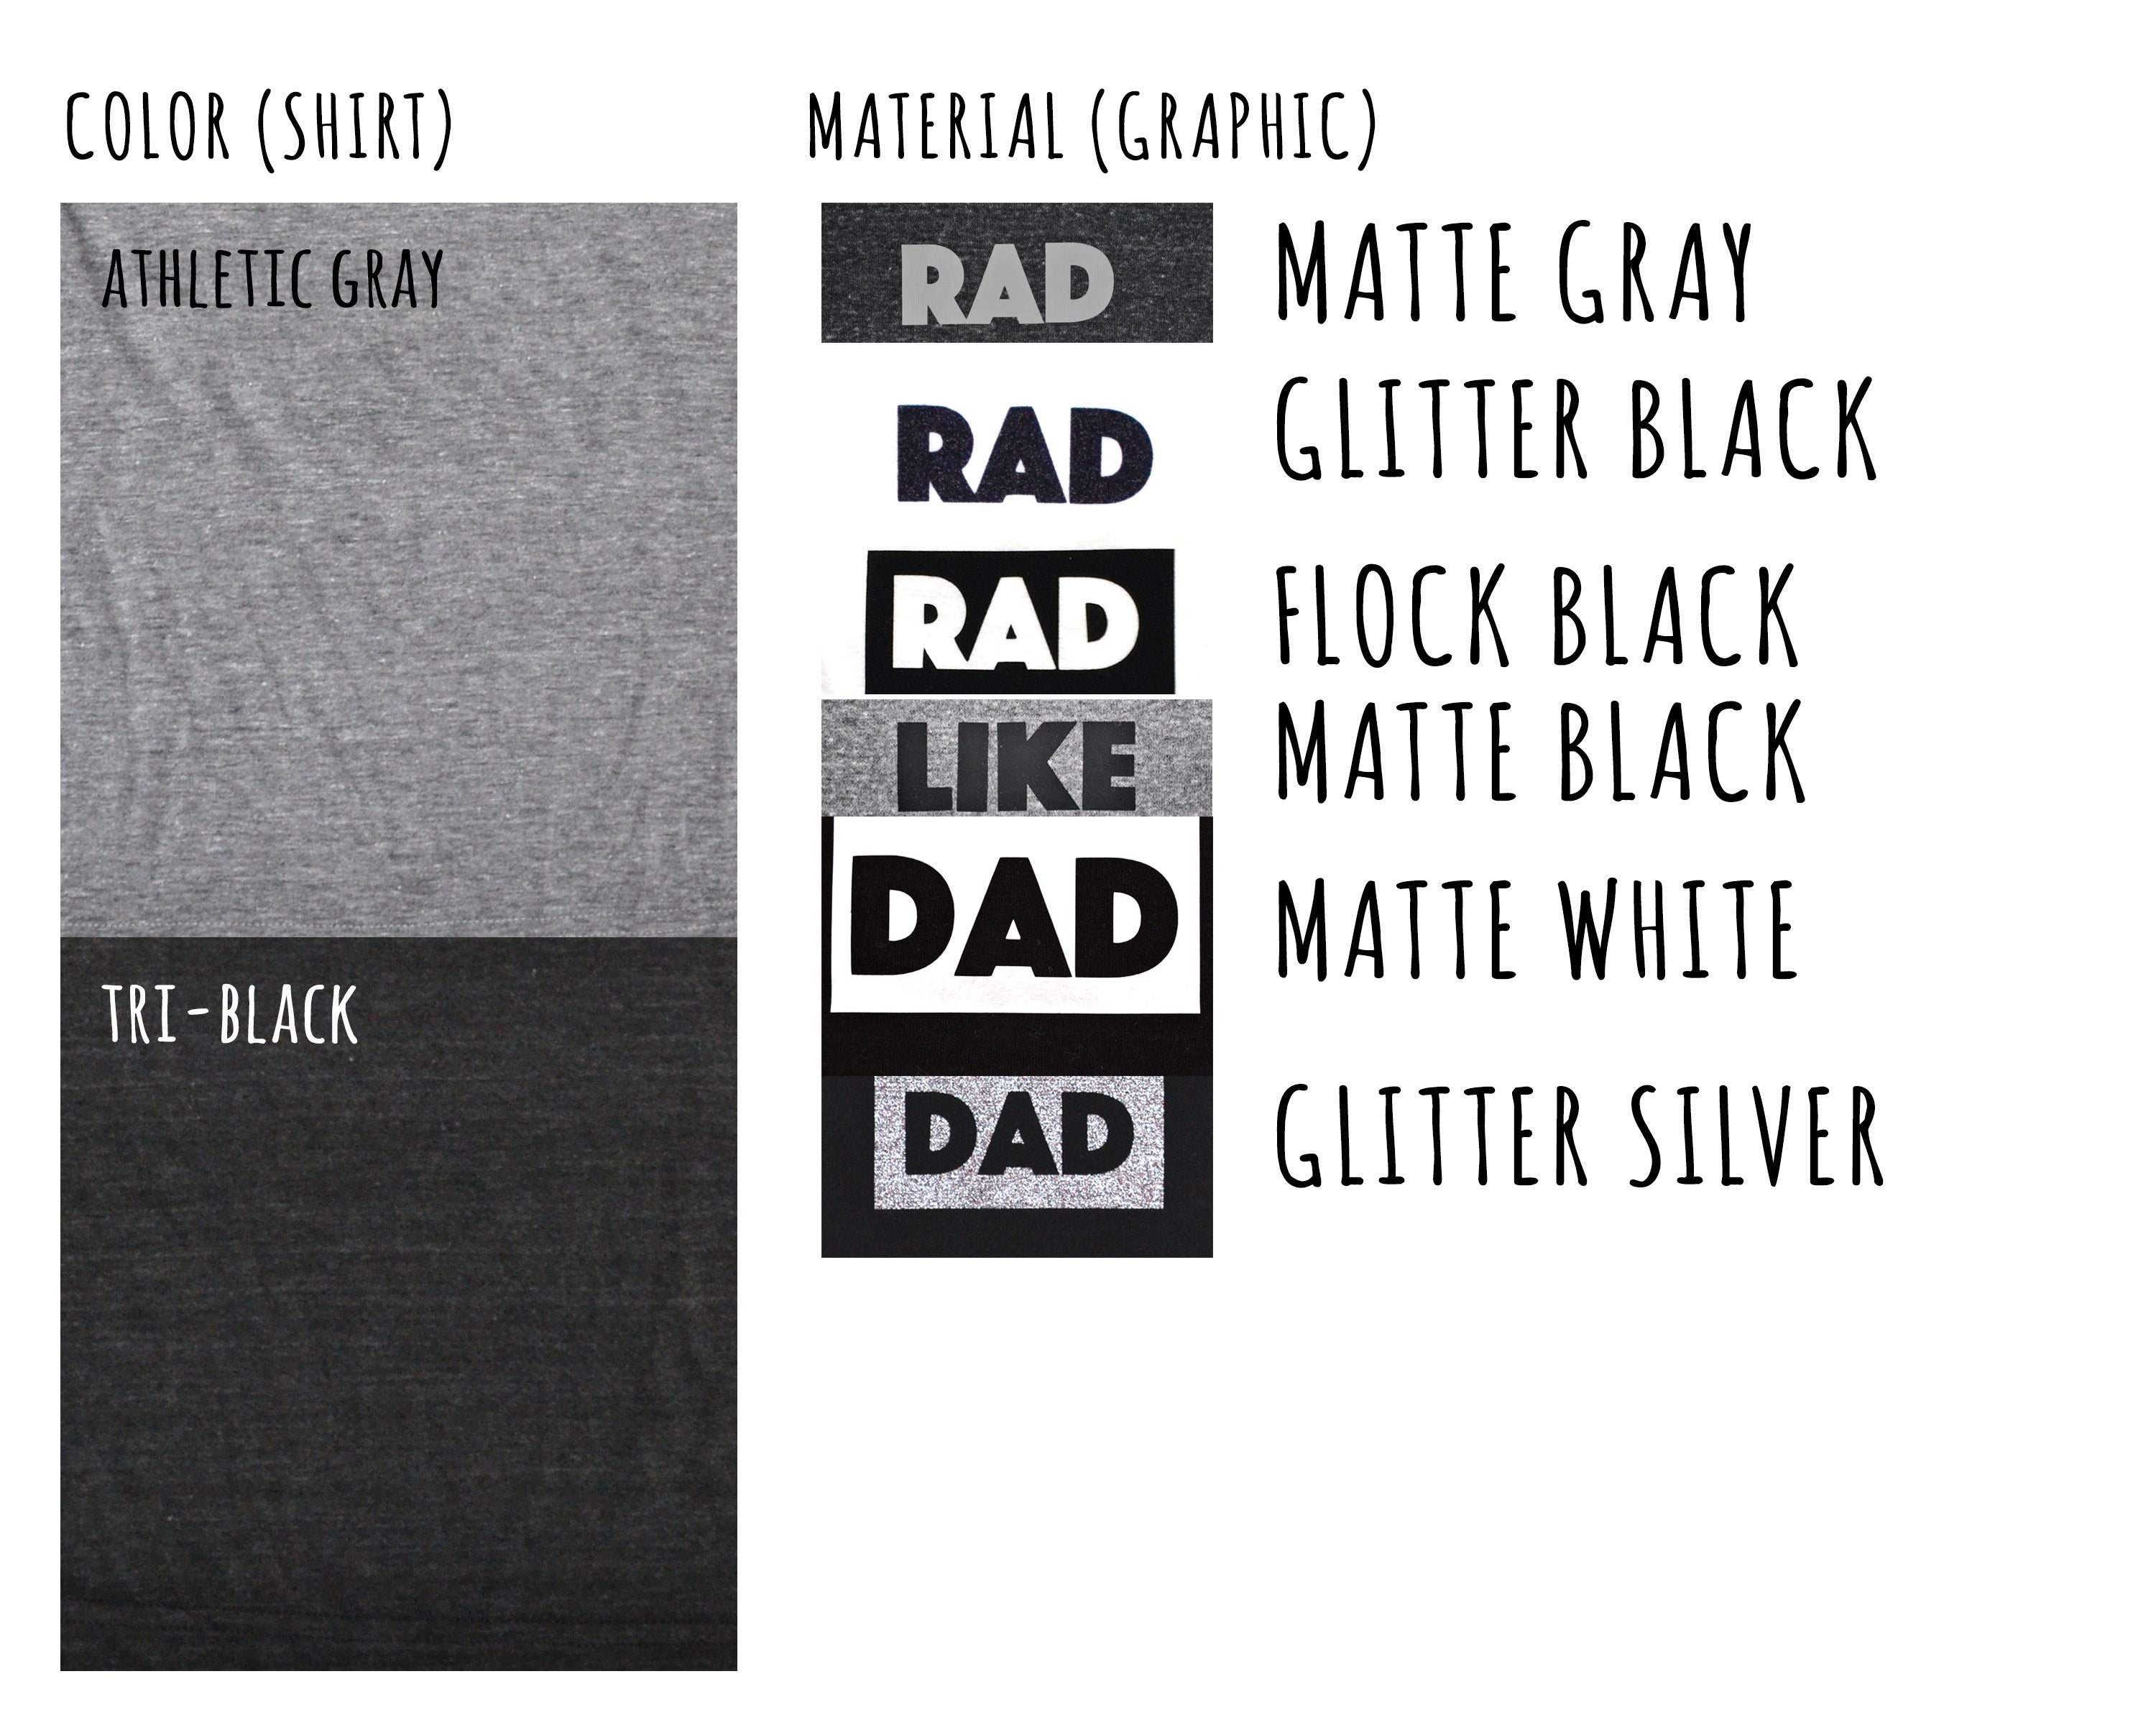 rad like dad kids tee: regular letters